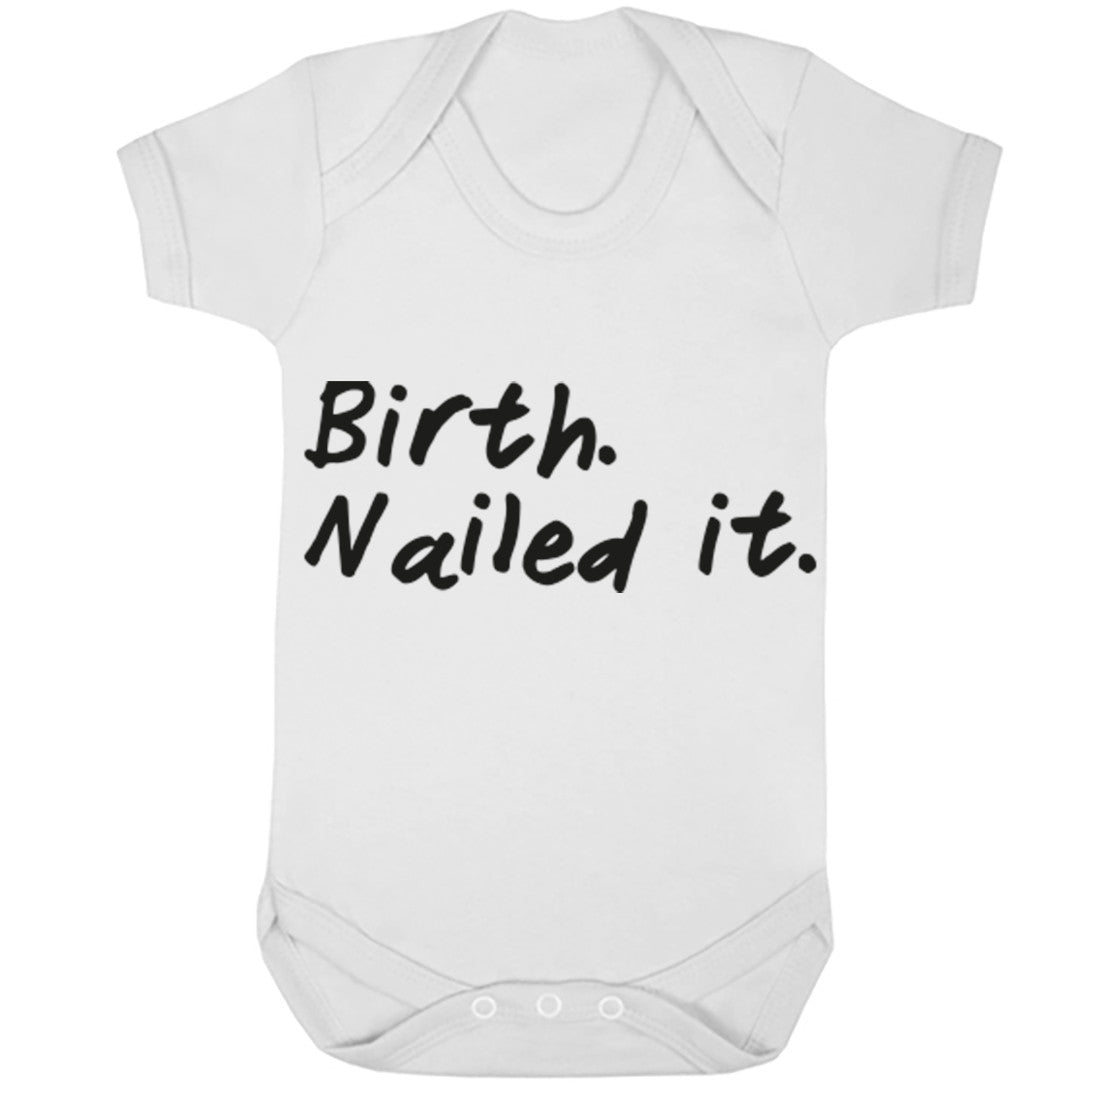 Birth Nailed It Baby Vest K0007